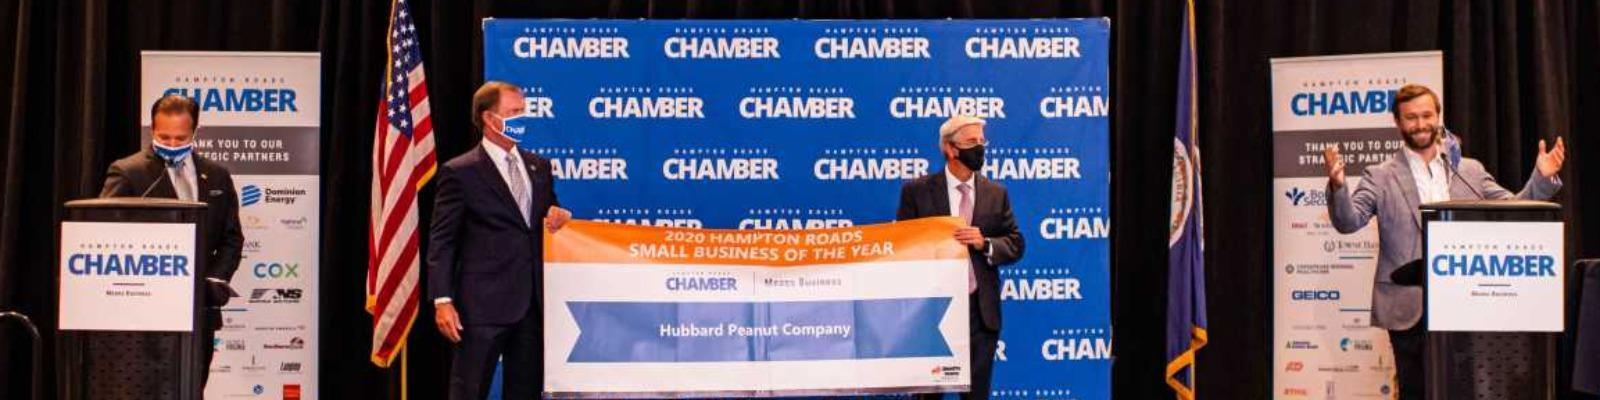 Hampton Roads Chamber Small Business of the Year Awards 2020 Cover